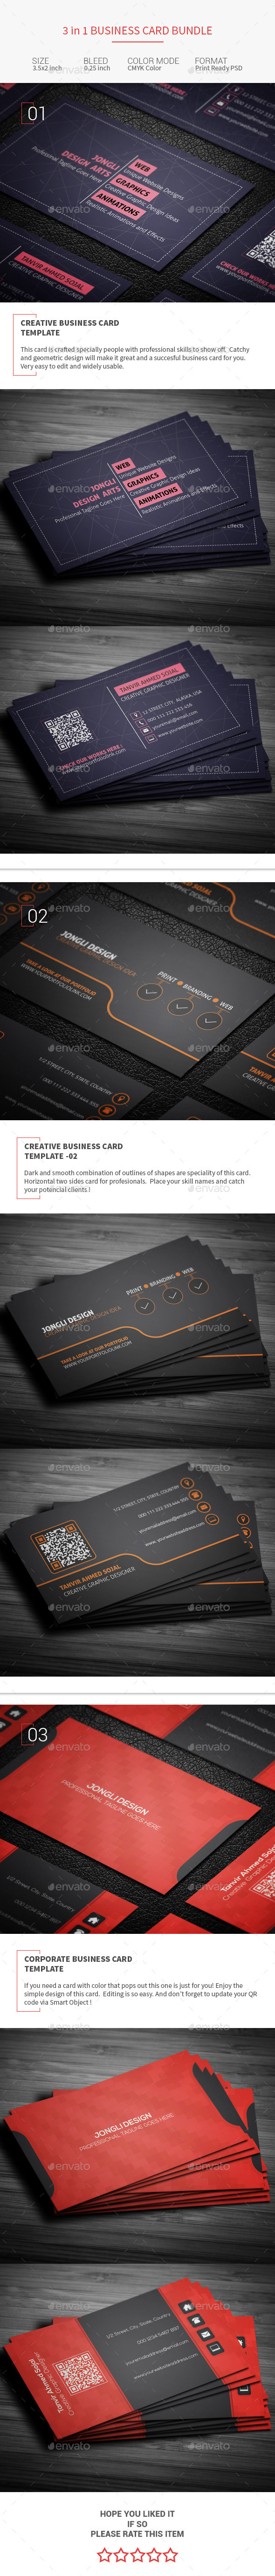 3 in 1 Business Card Bundle - Corporate Business Cards